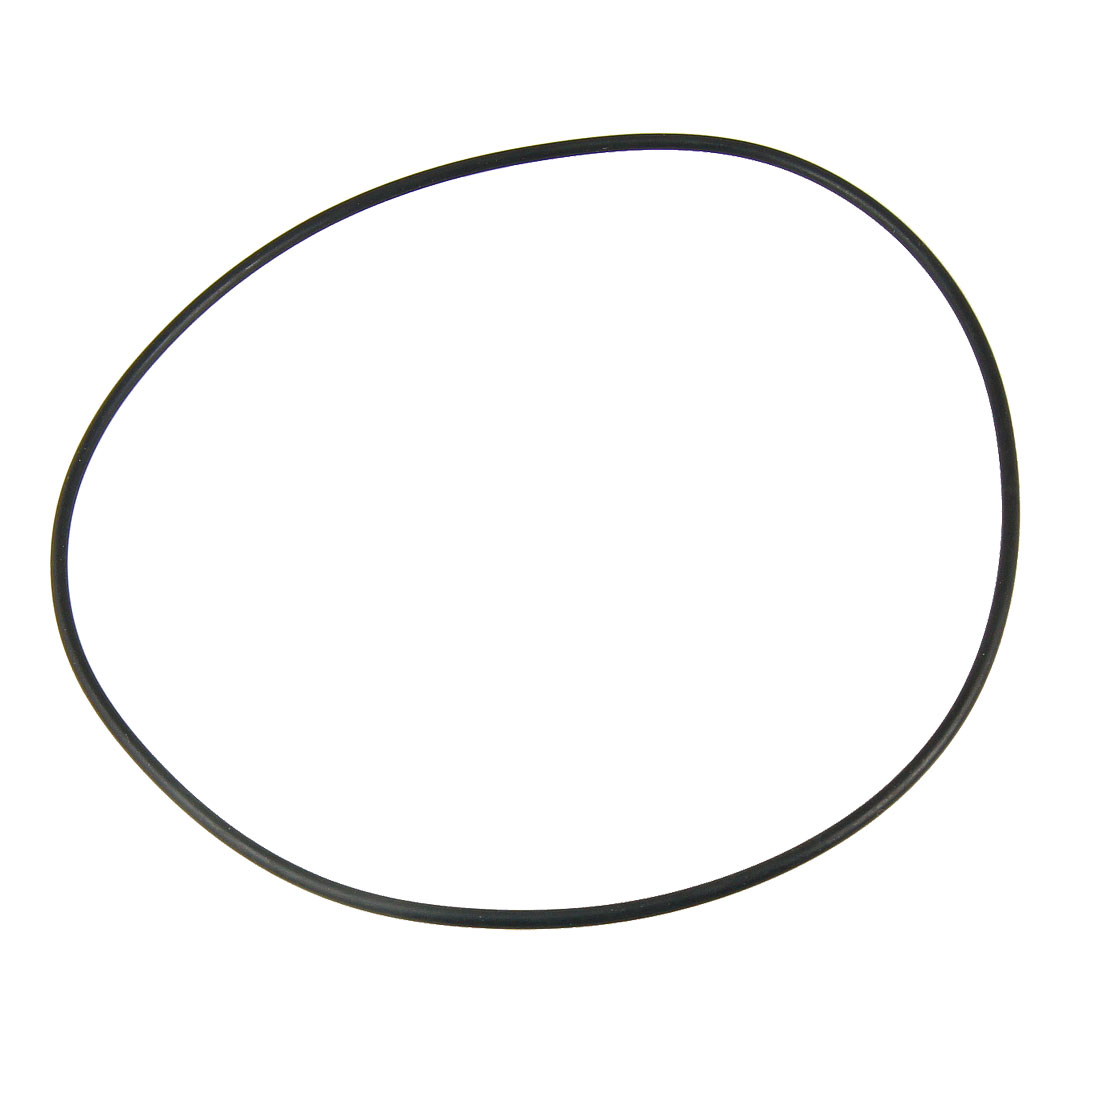 185mm x 3.5mm x 178mm Flexible Rubber O Ring Seal Washer Black